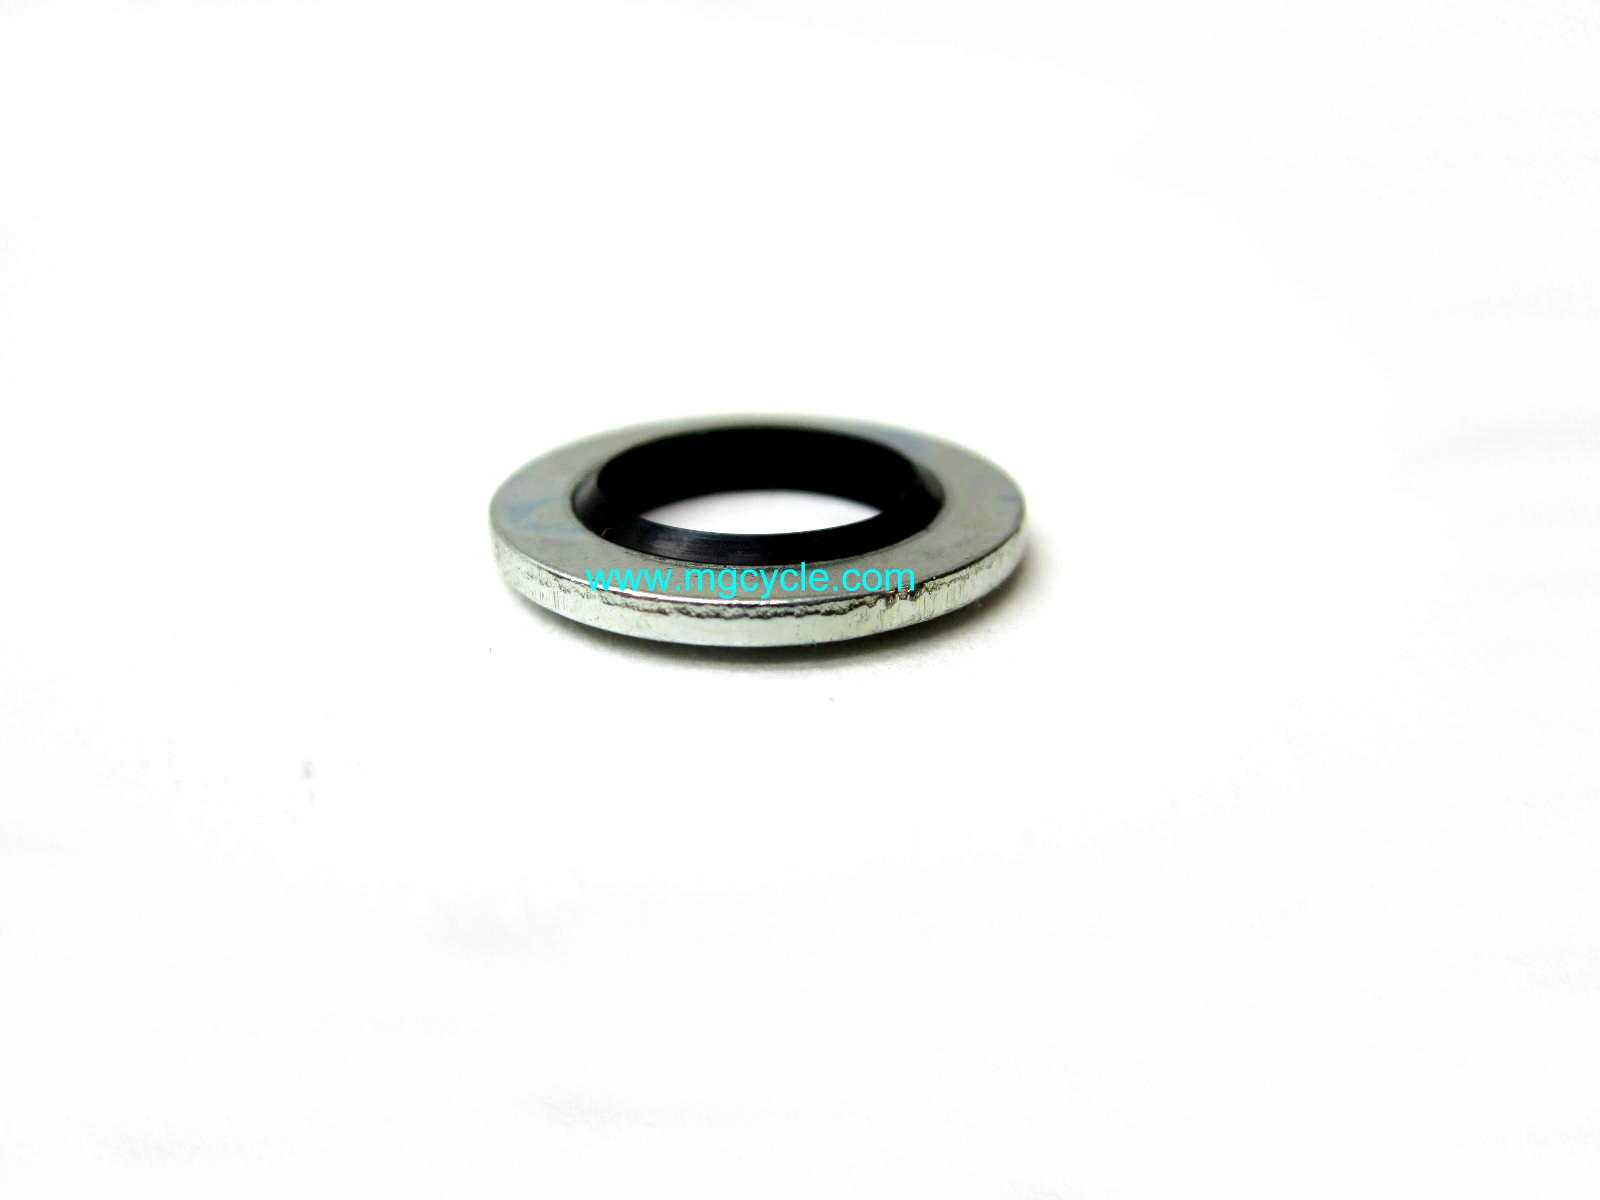 10mm sealing washer with rubber ring 1999 onward GU01528930